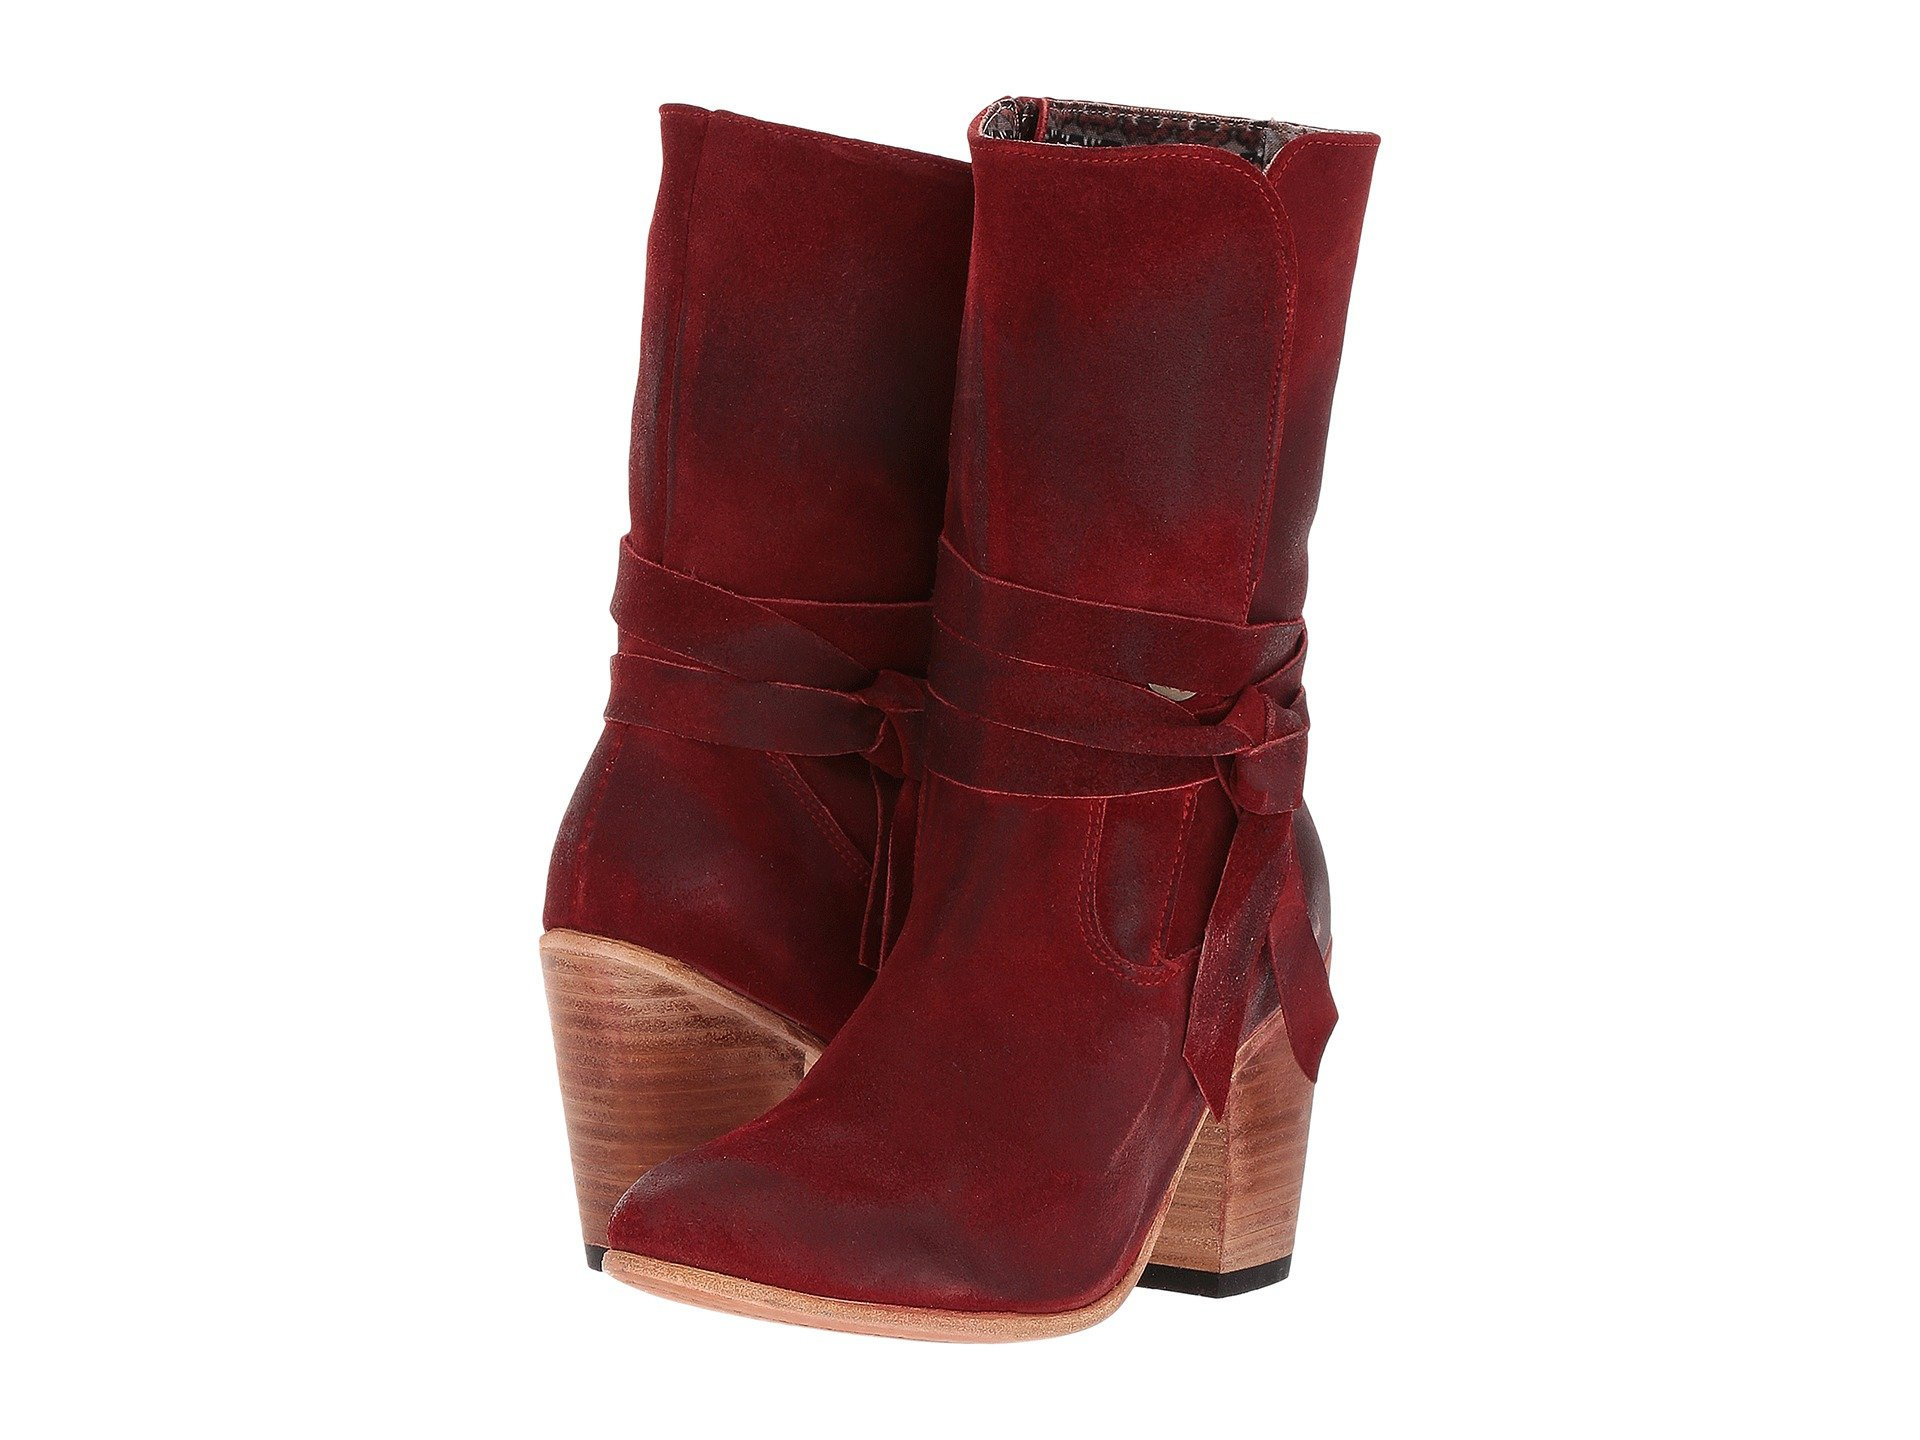 FREEBIRD Riot, Red Suede